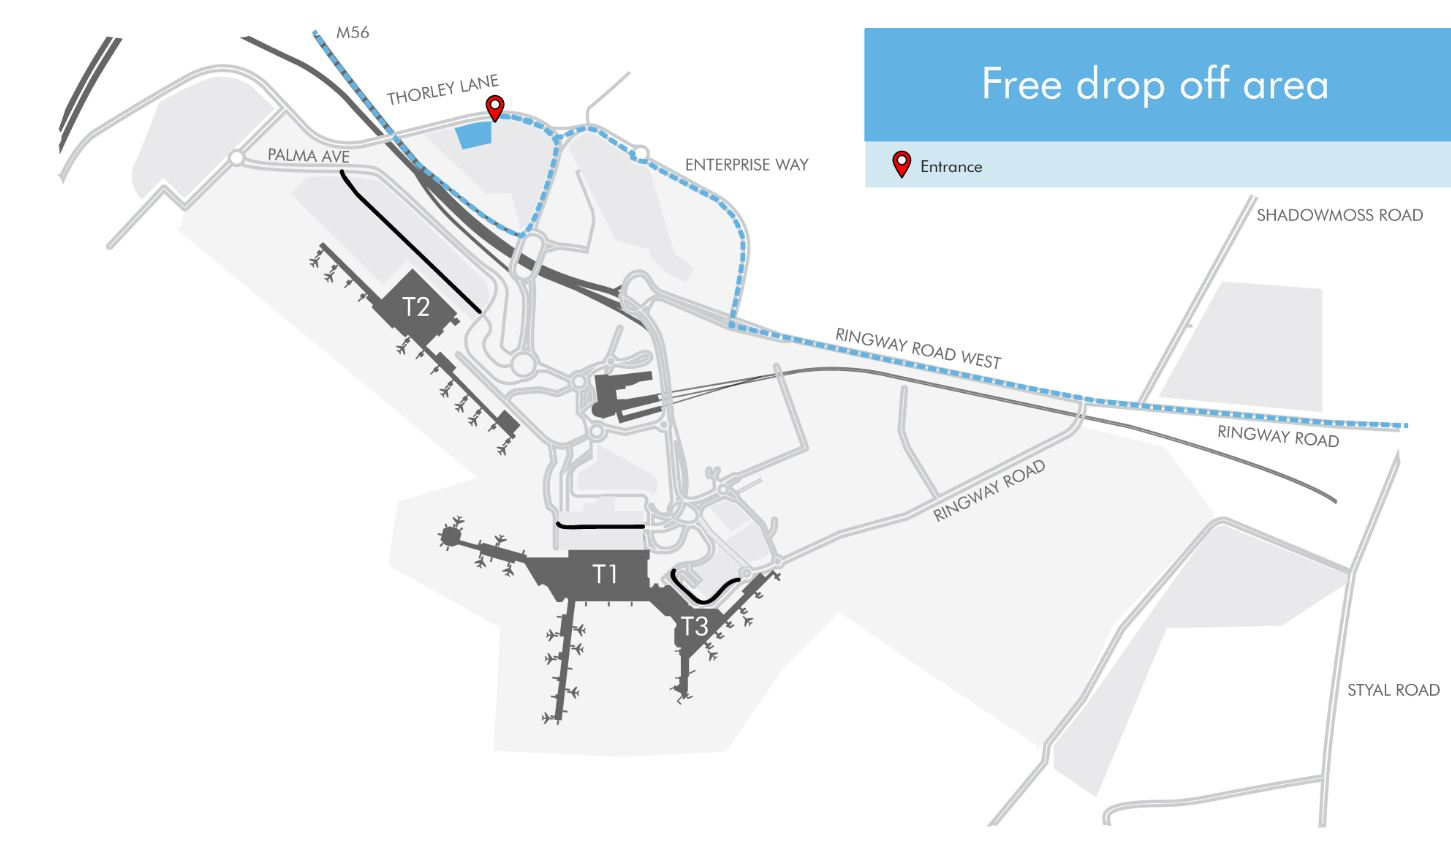 Manchester Airport Route Map Pick Up & Drop Off Information & Charges | Manchester Airport